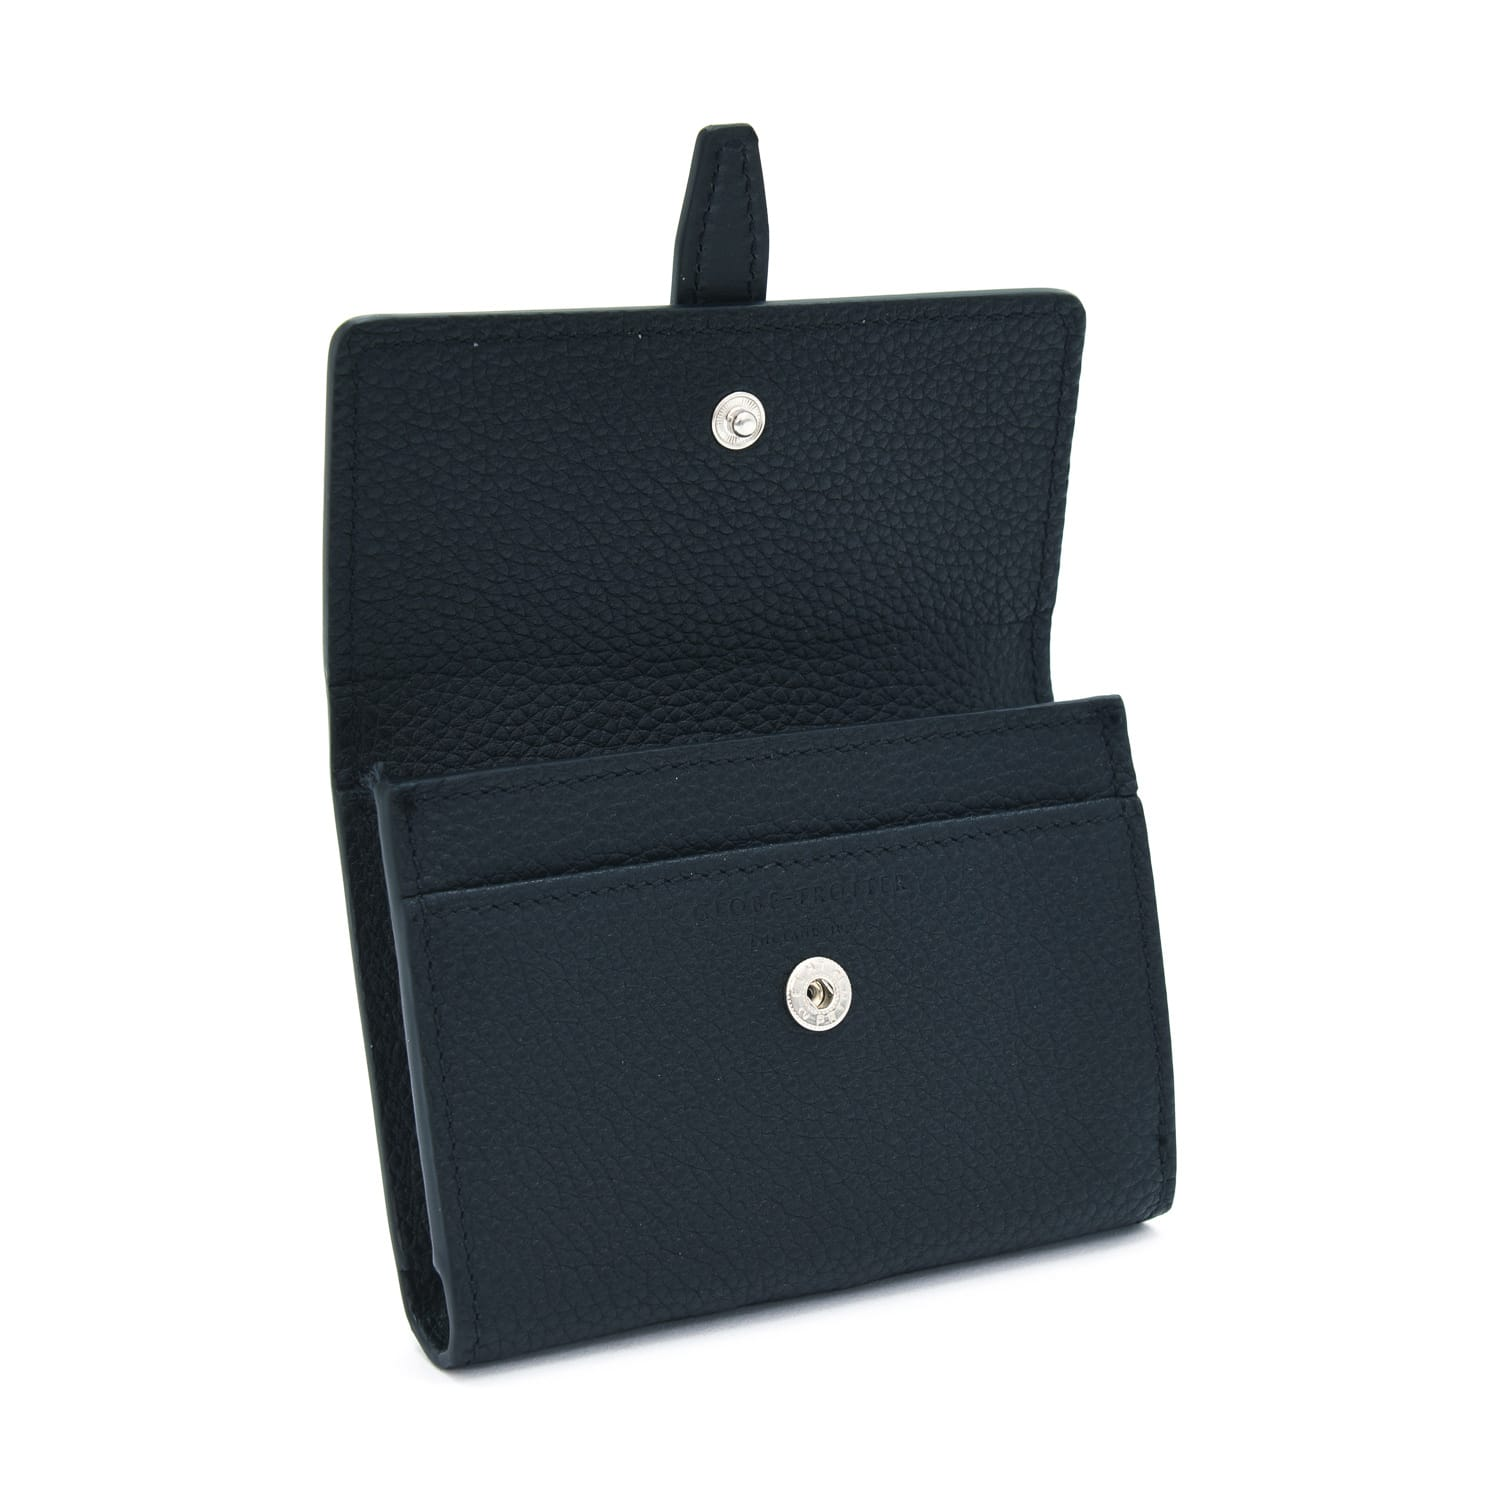 Centenary Leather · Ladies Name Card Holder - Black